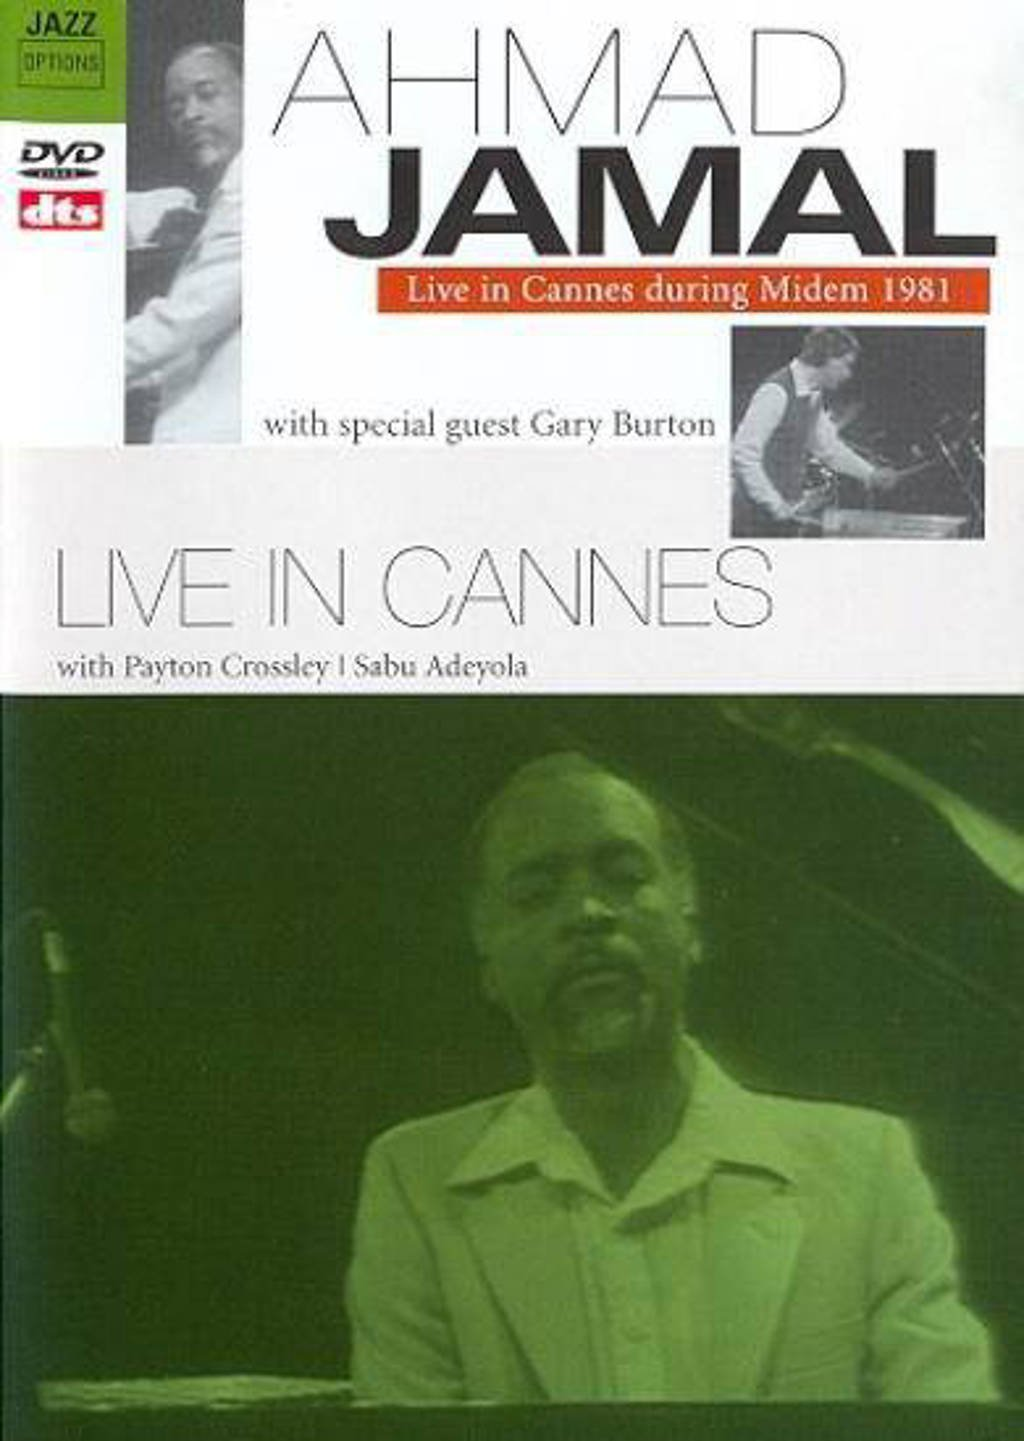 Jamal Ahmad - Live in Cannes (DVD)